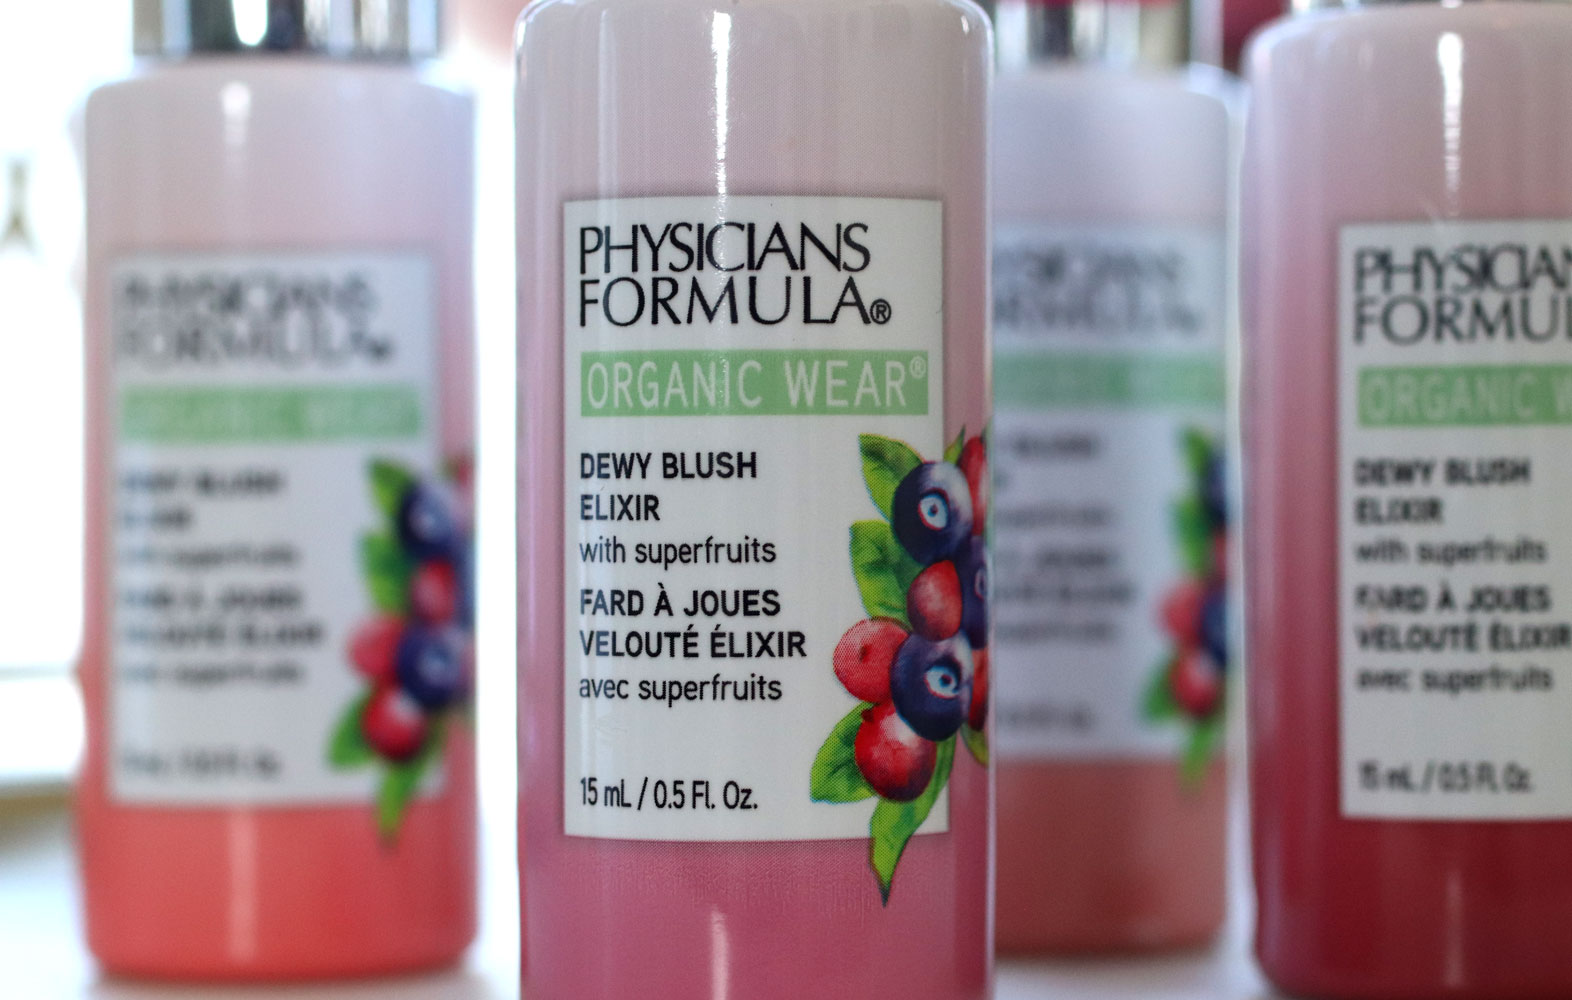 Physicians Formula Organic Wear Dewy Blush Elixir Review and Swatches